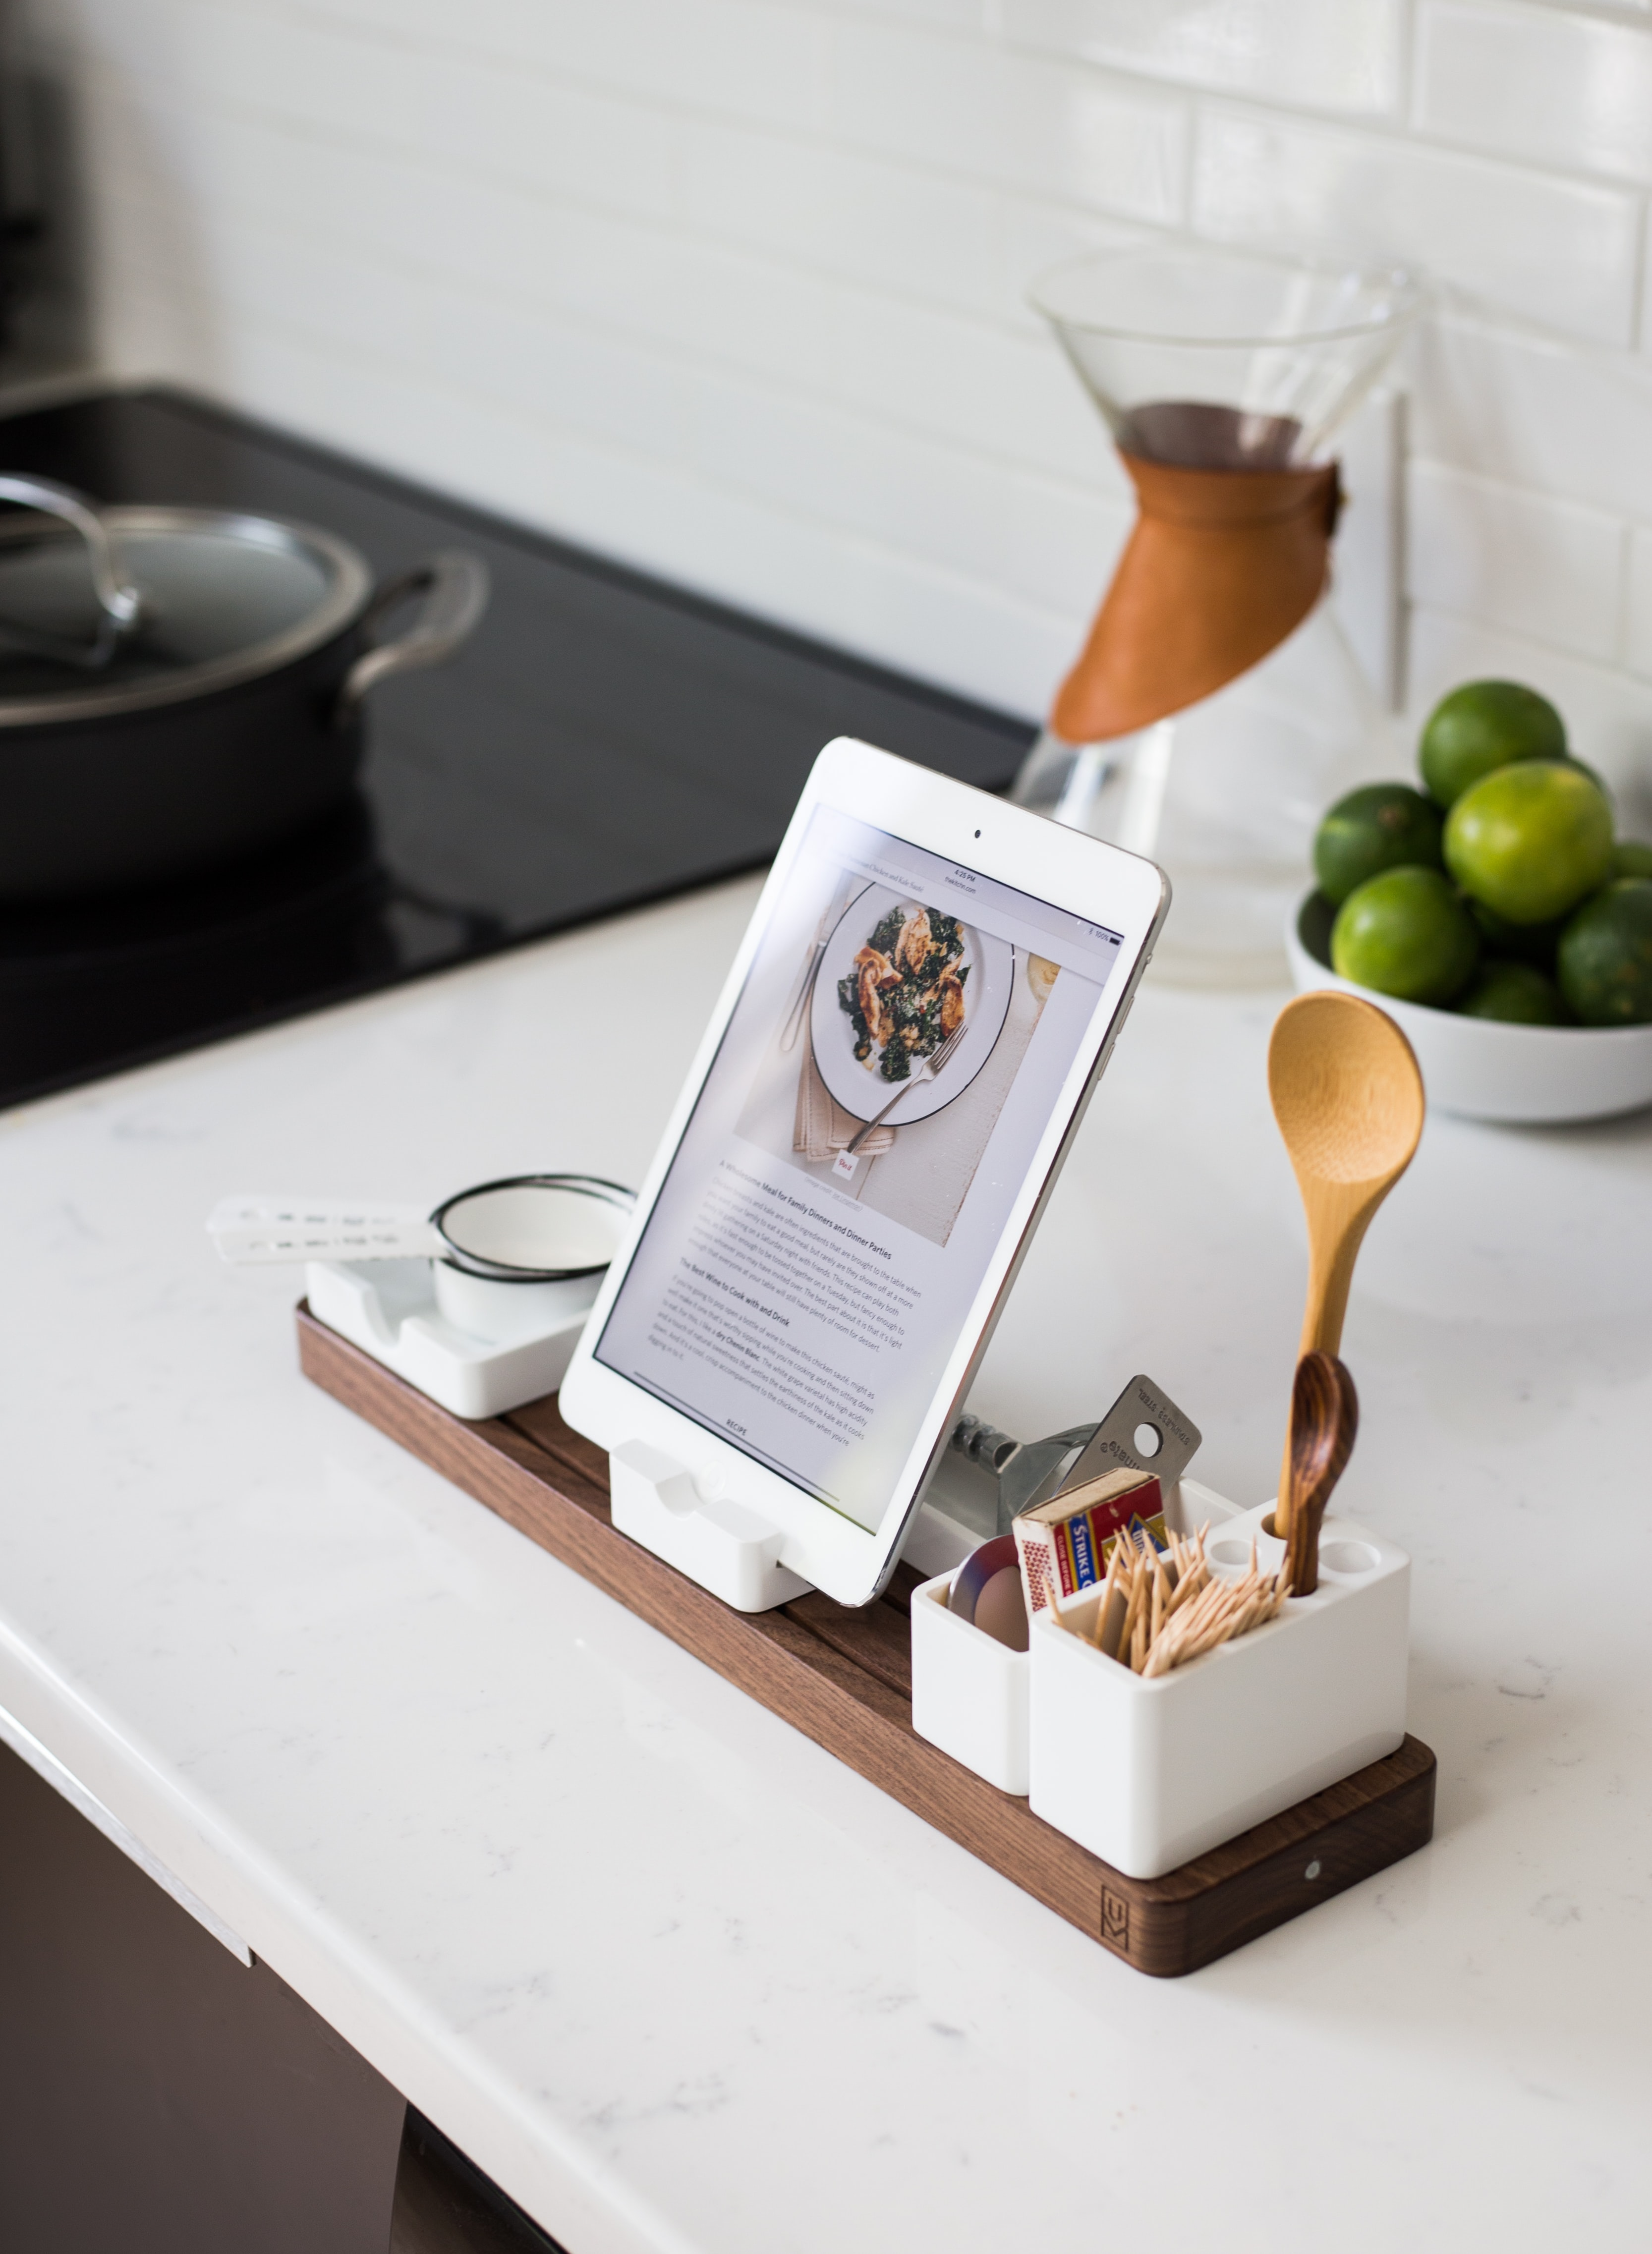 a phone on a counter with artisan bread recipes on the screen